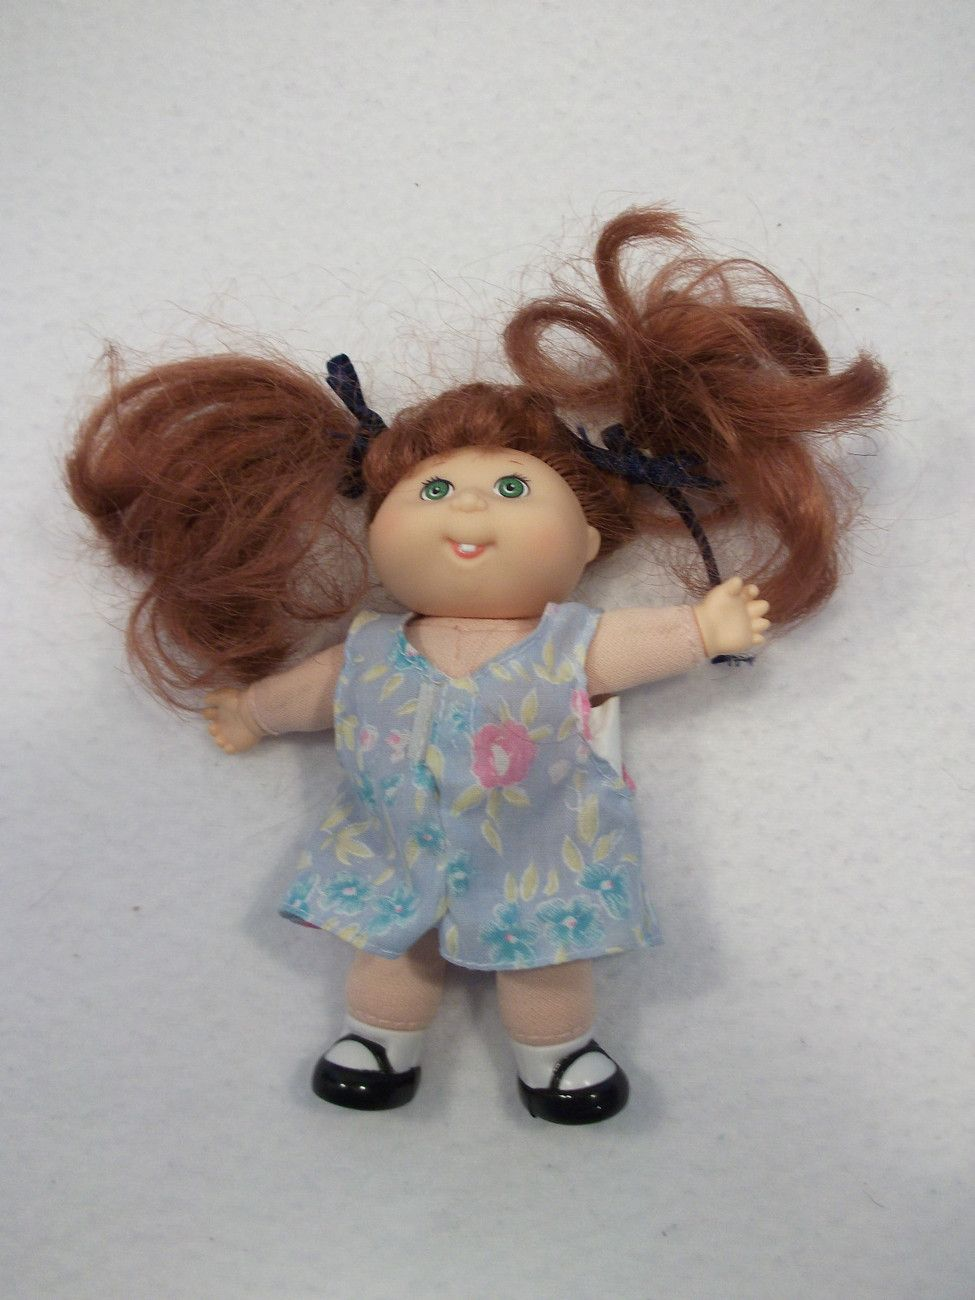 Bonanza Find Everything But The Ordinary Cabbage Patch Dolls Cabbage Patch Kids Cabbage Patch